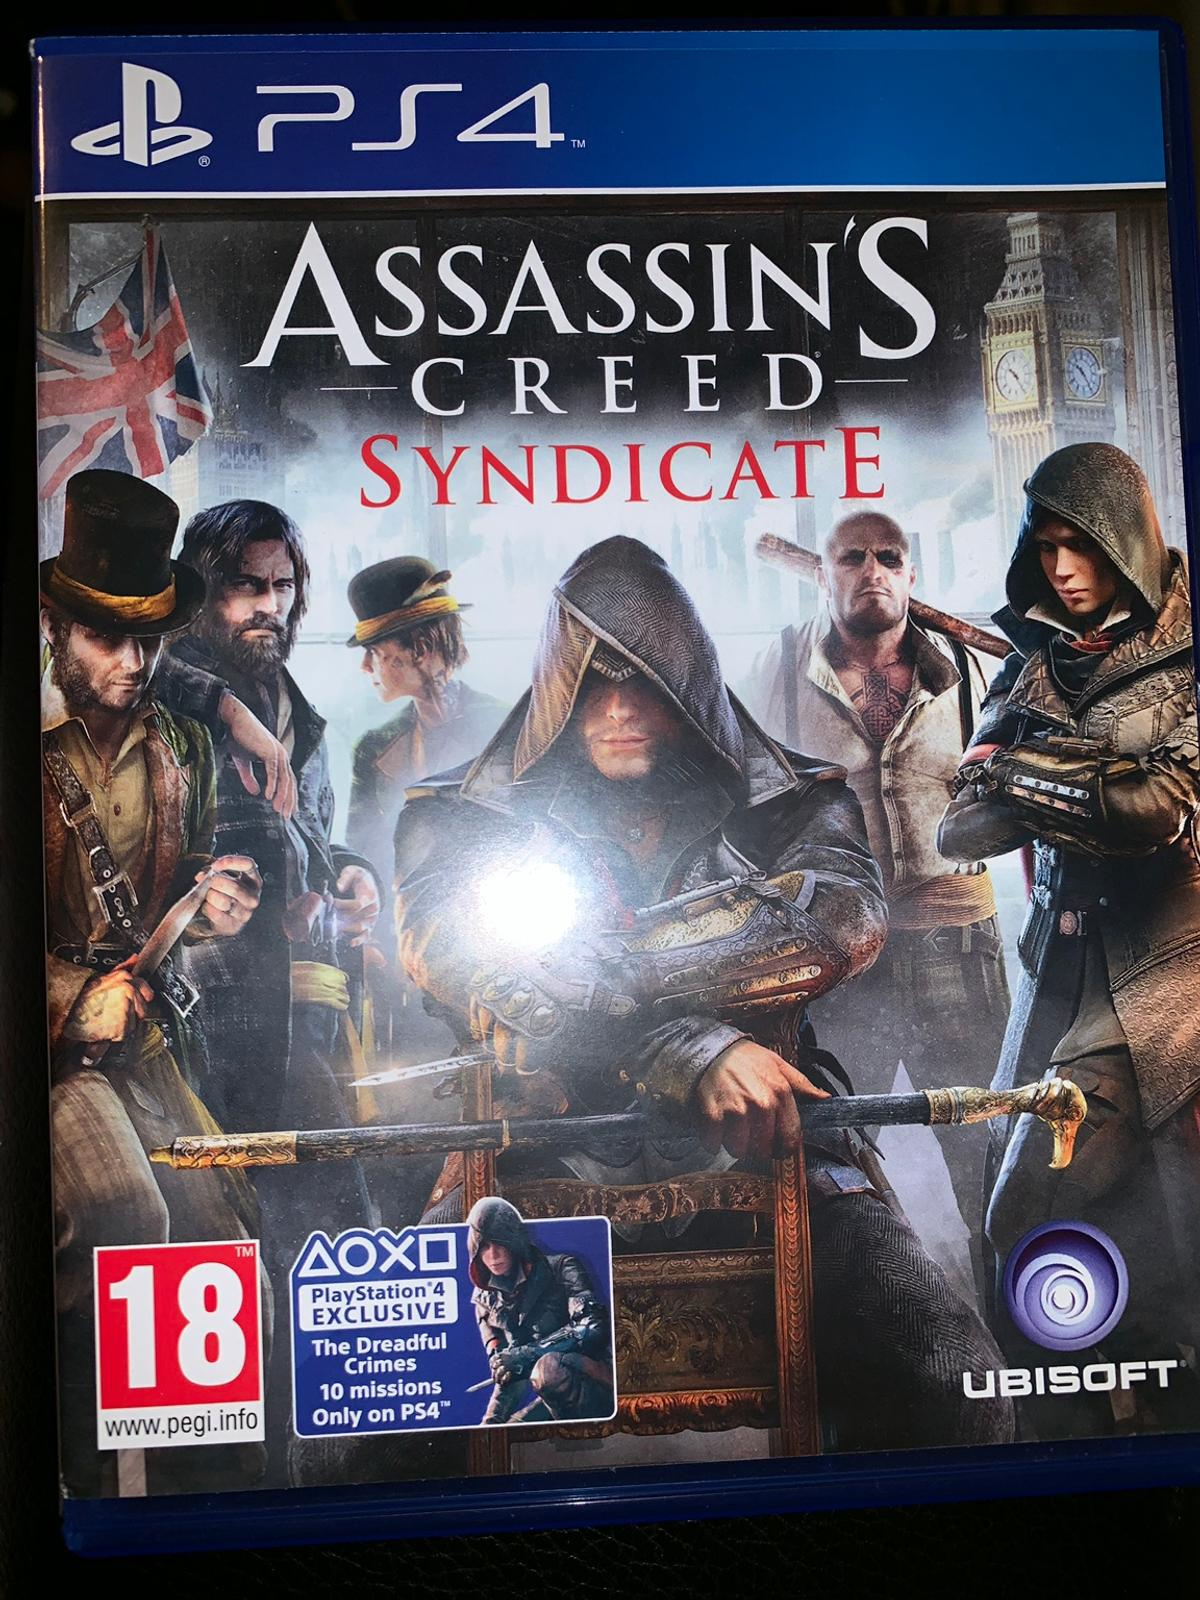 Assassins Creed Syndicate Ps4 In London For 12 00 For Sale Shpock